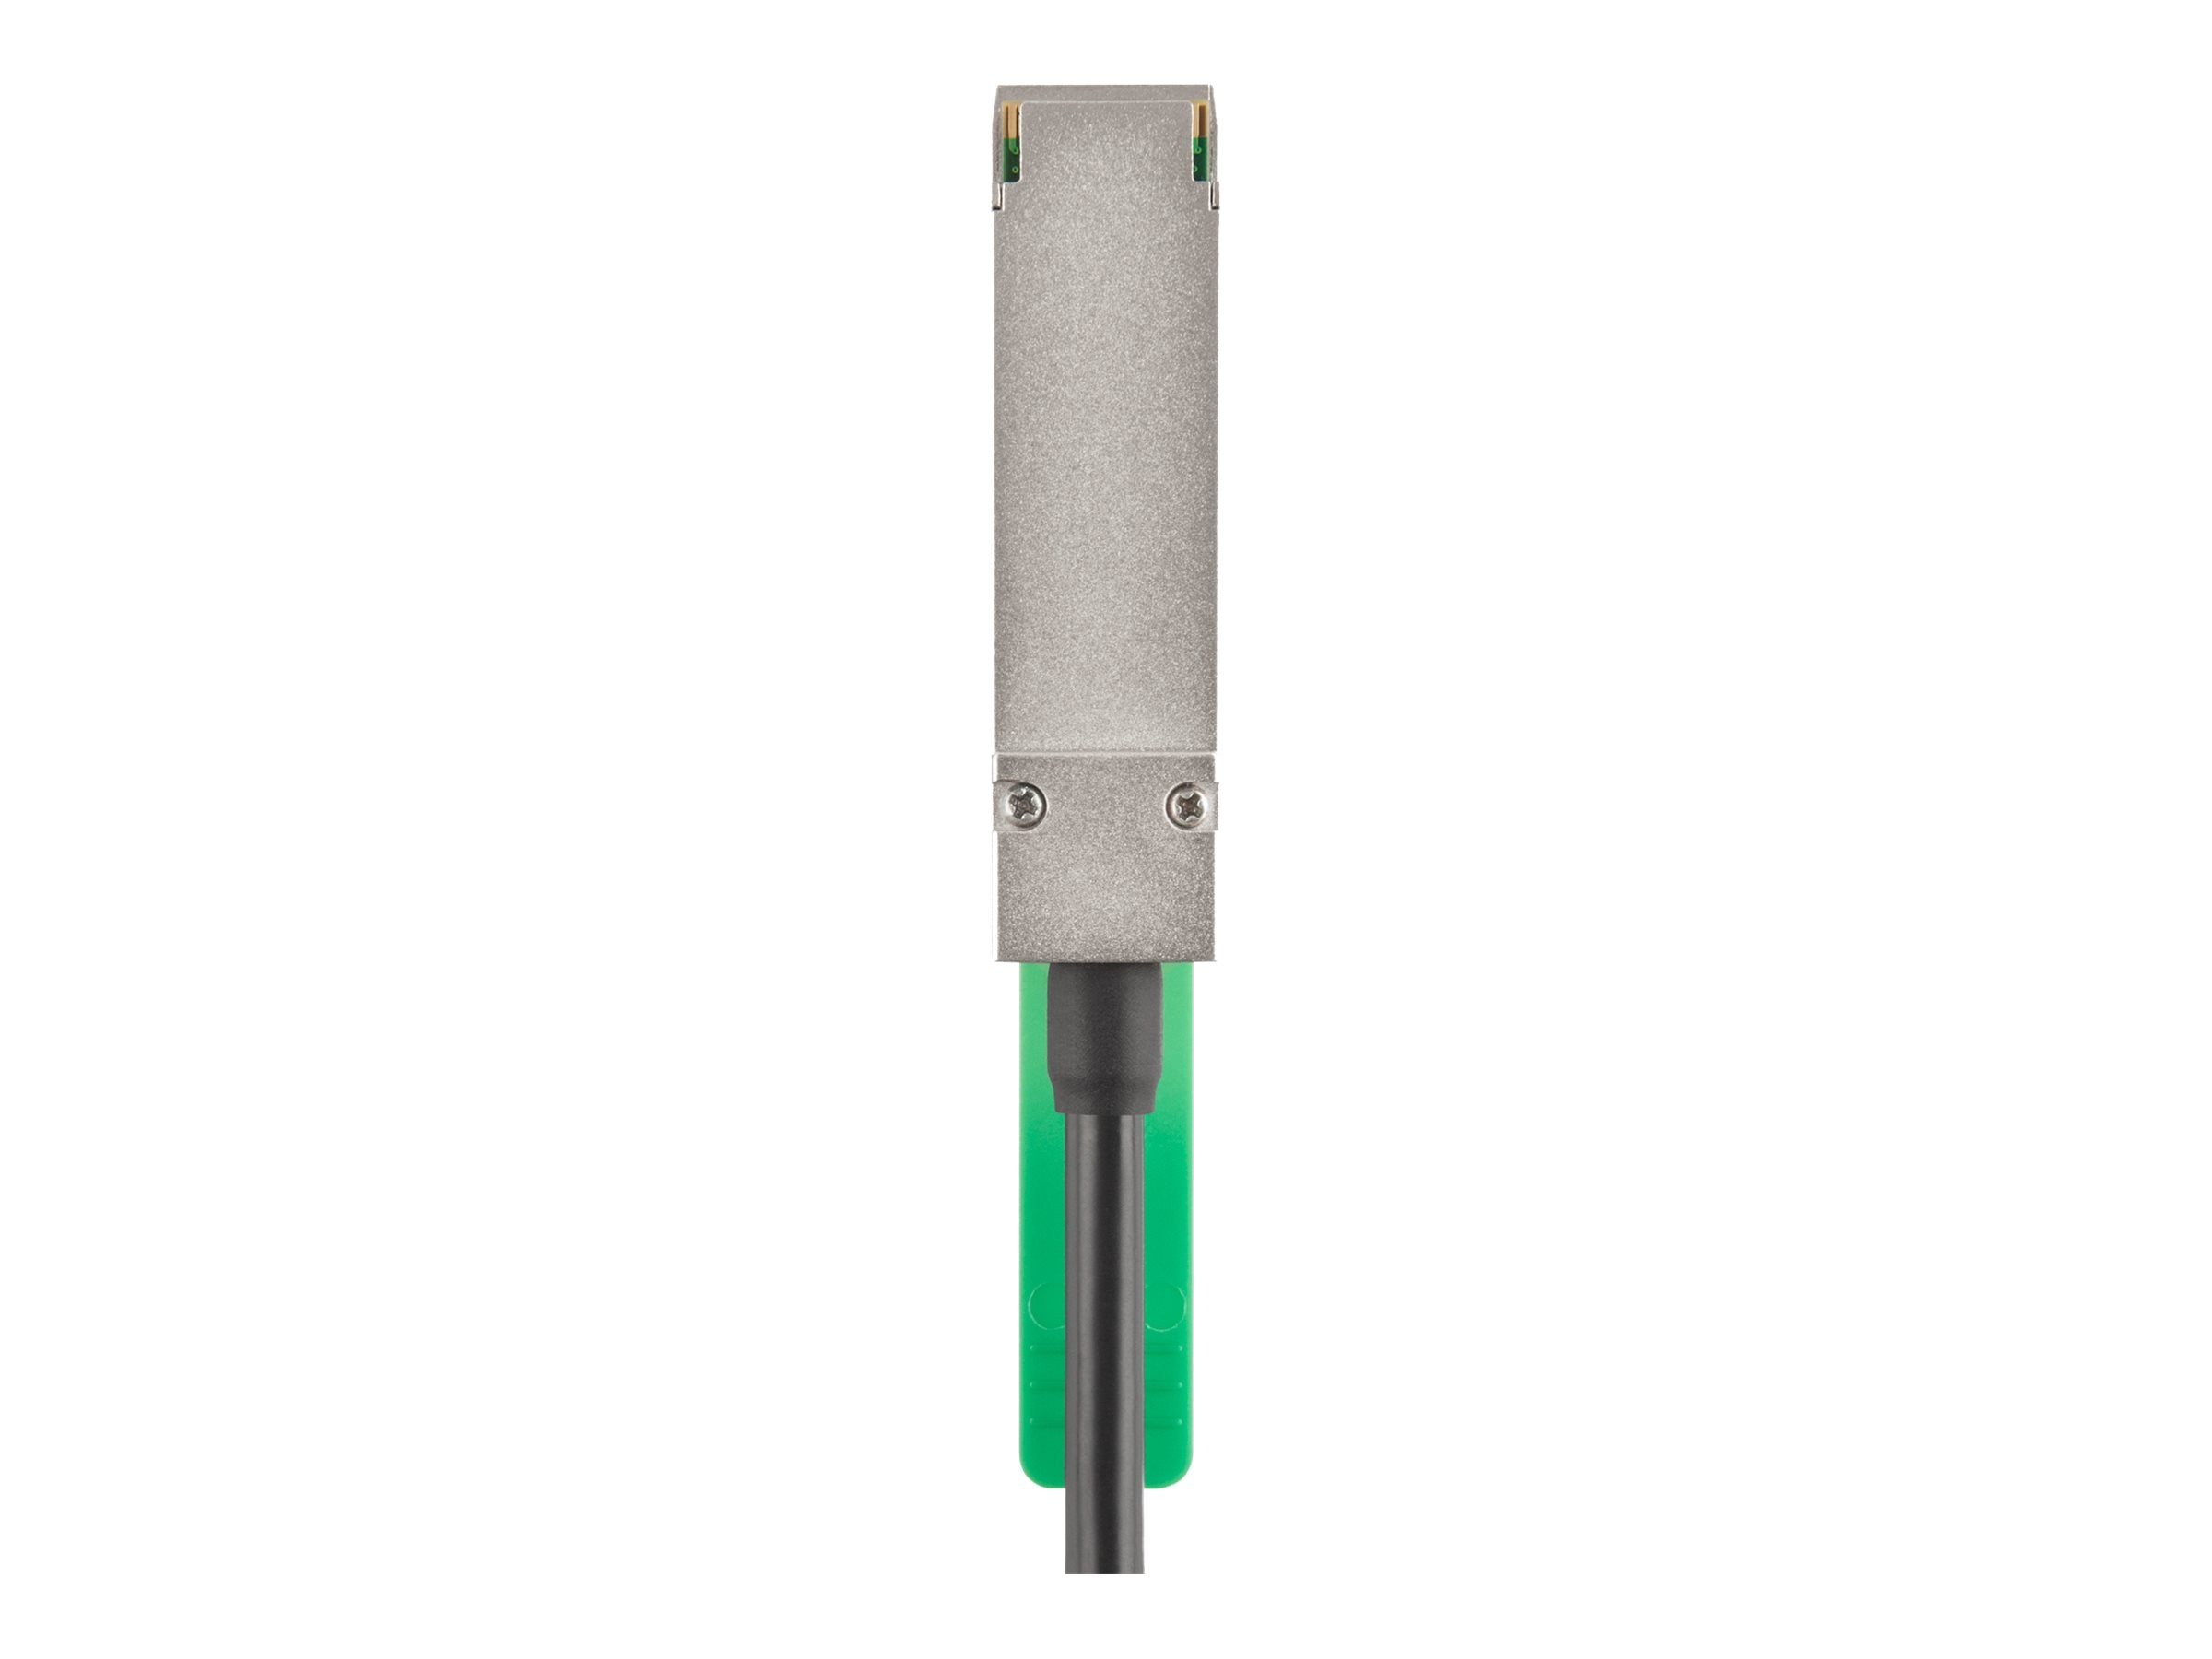 Belkin QSFP+ 40Gbase Direct Attach Passive Twinaxial Cable, 1m, F2CX037-01M